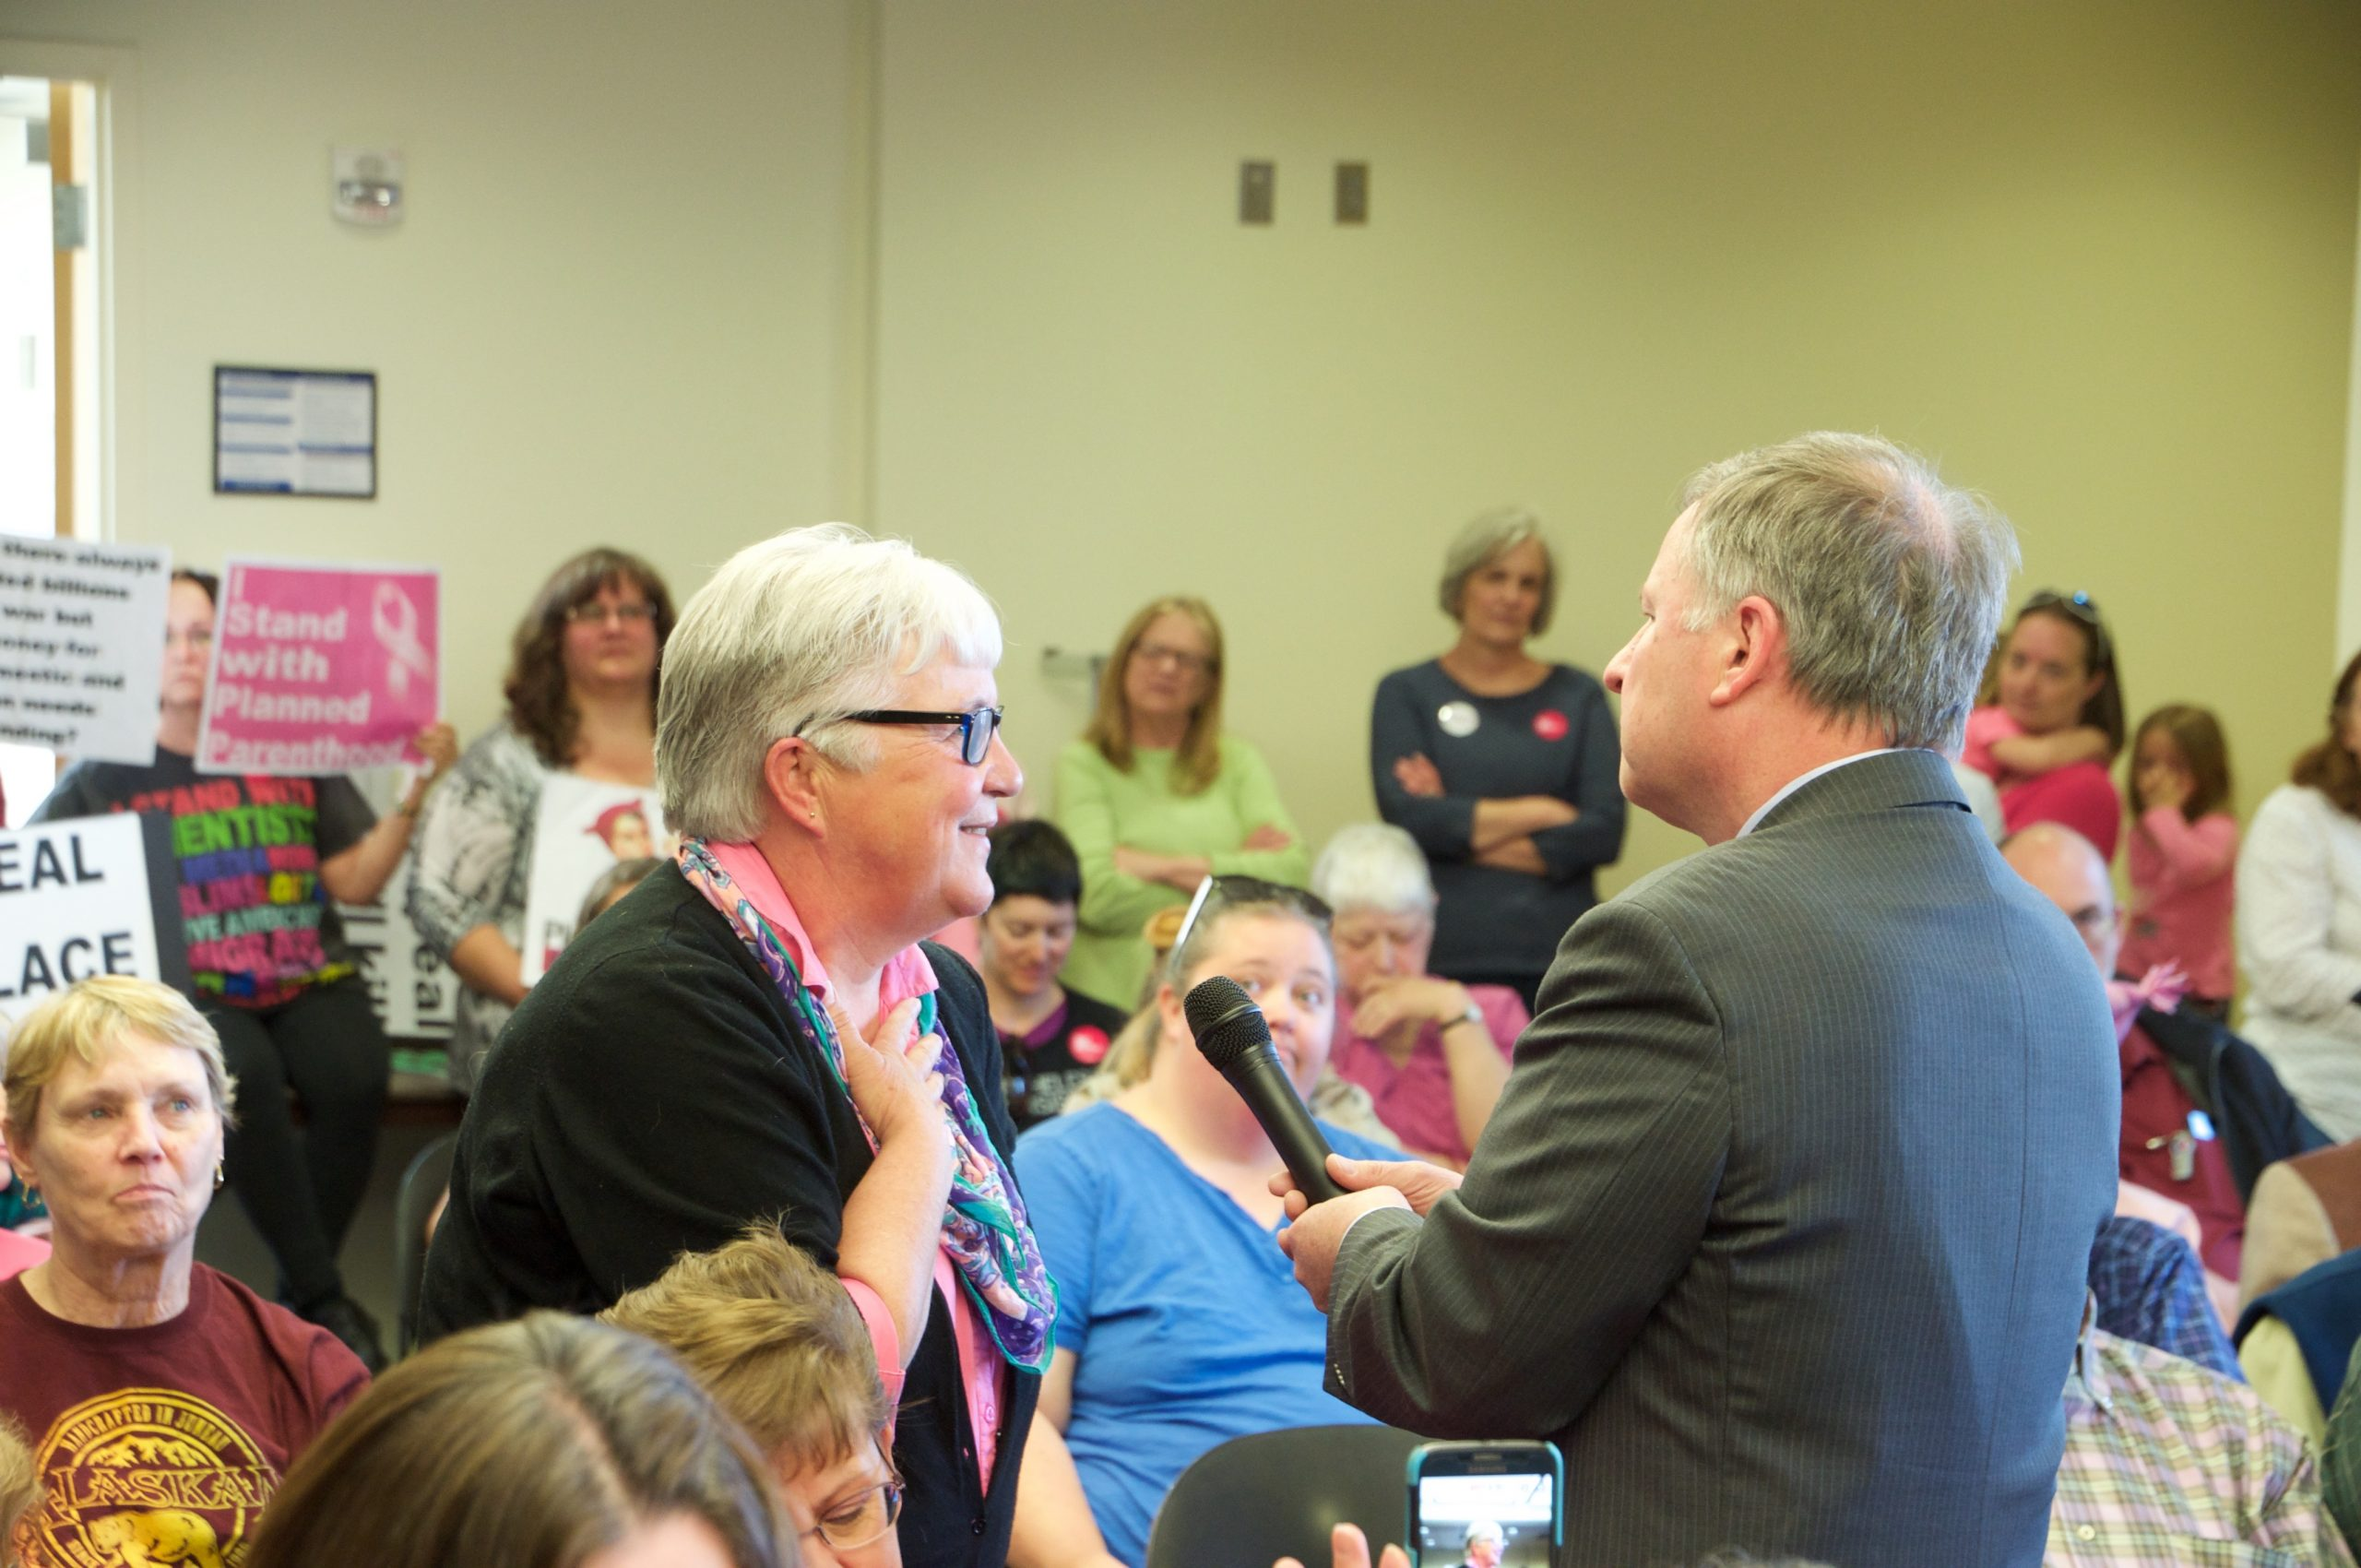 Congressman Doug Lamborn takes a question from a constituent at a town hall meeting in Colorado Springs.